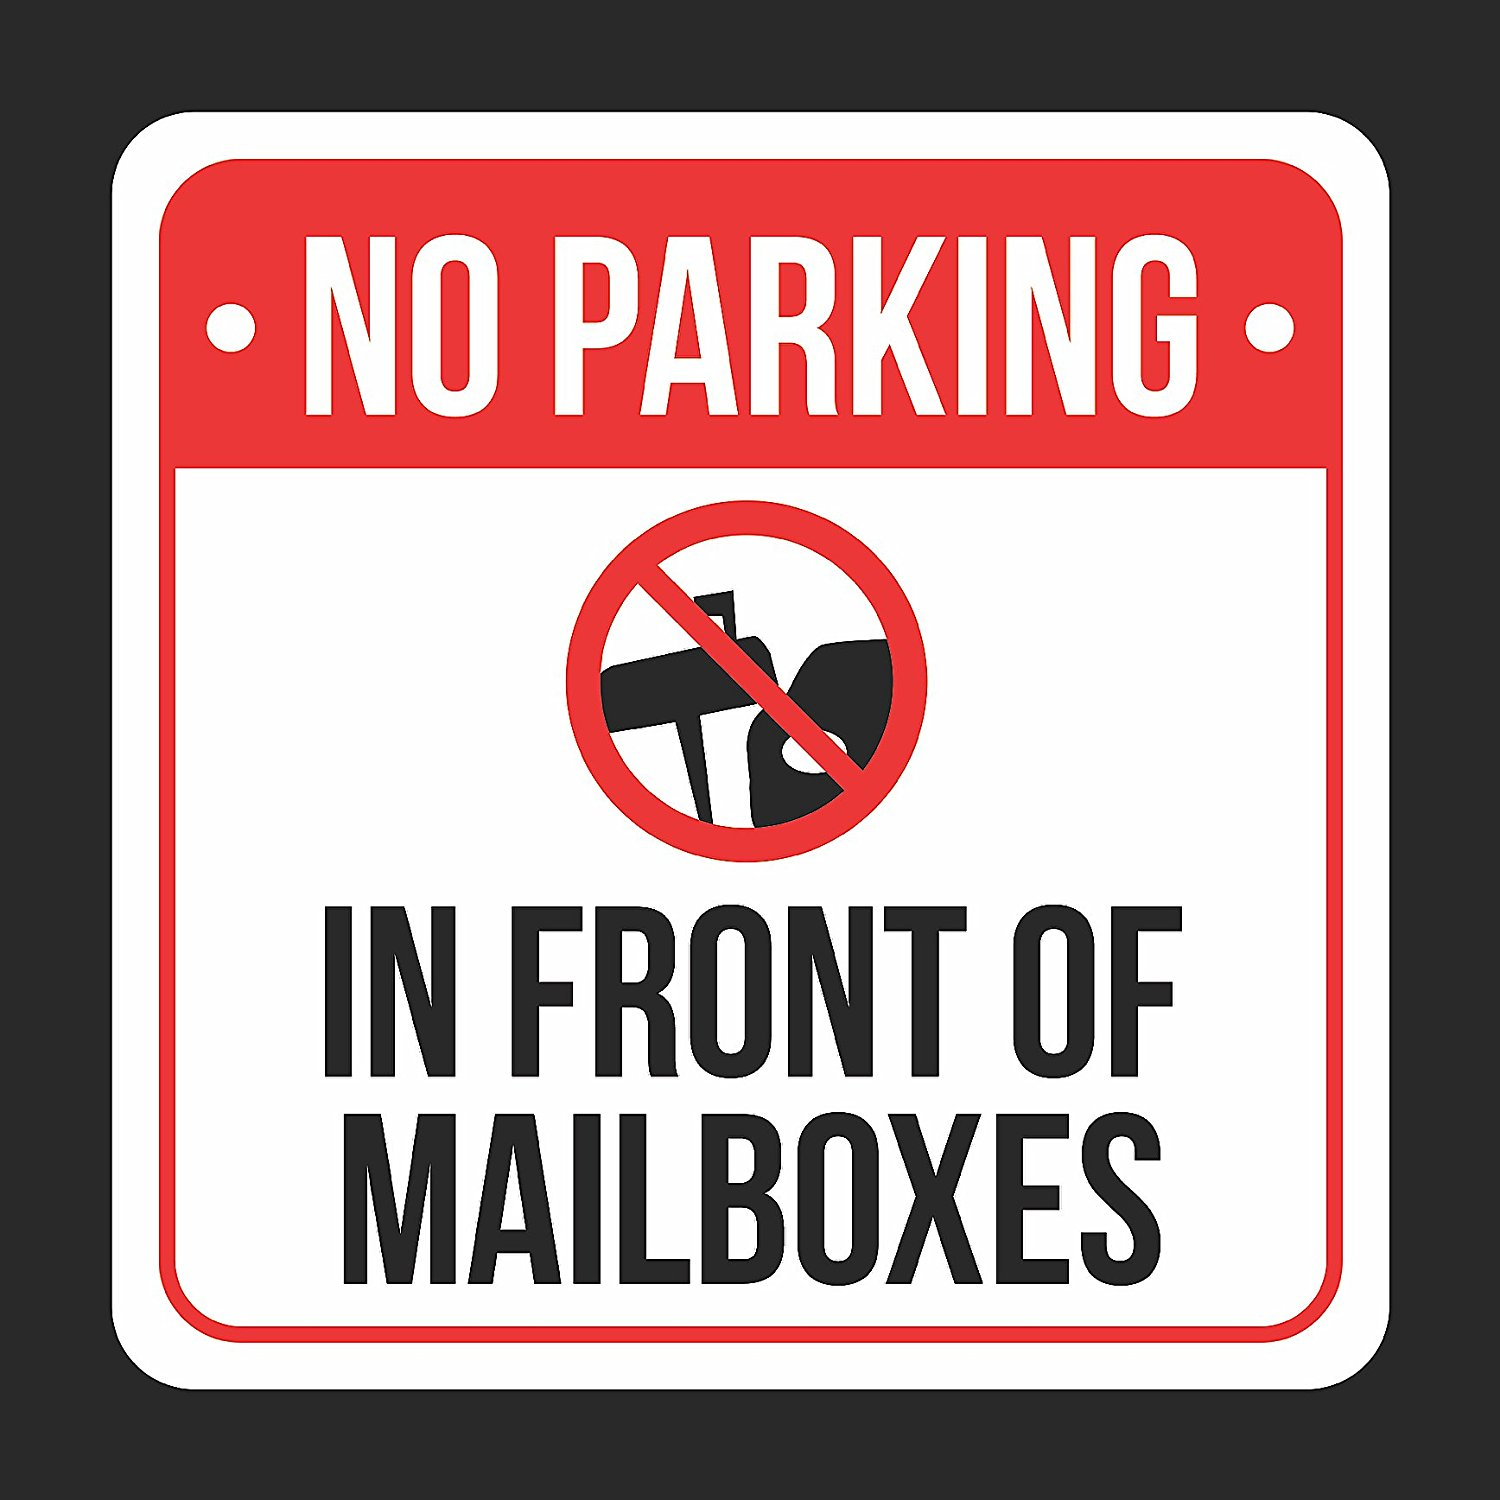 No Parking in Front of Gate Large Print Red Black White Poster Car Picture Symbol Notice Business Home Sign 12x18